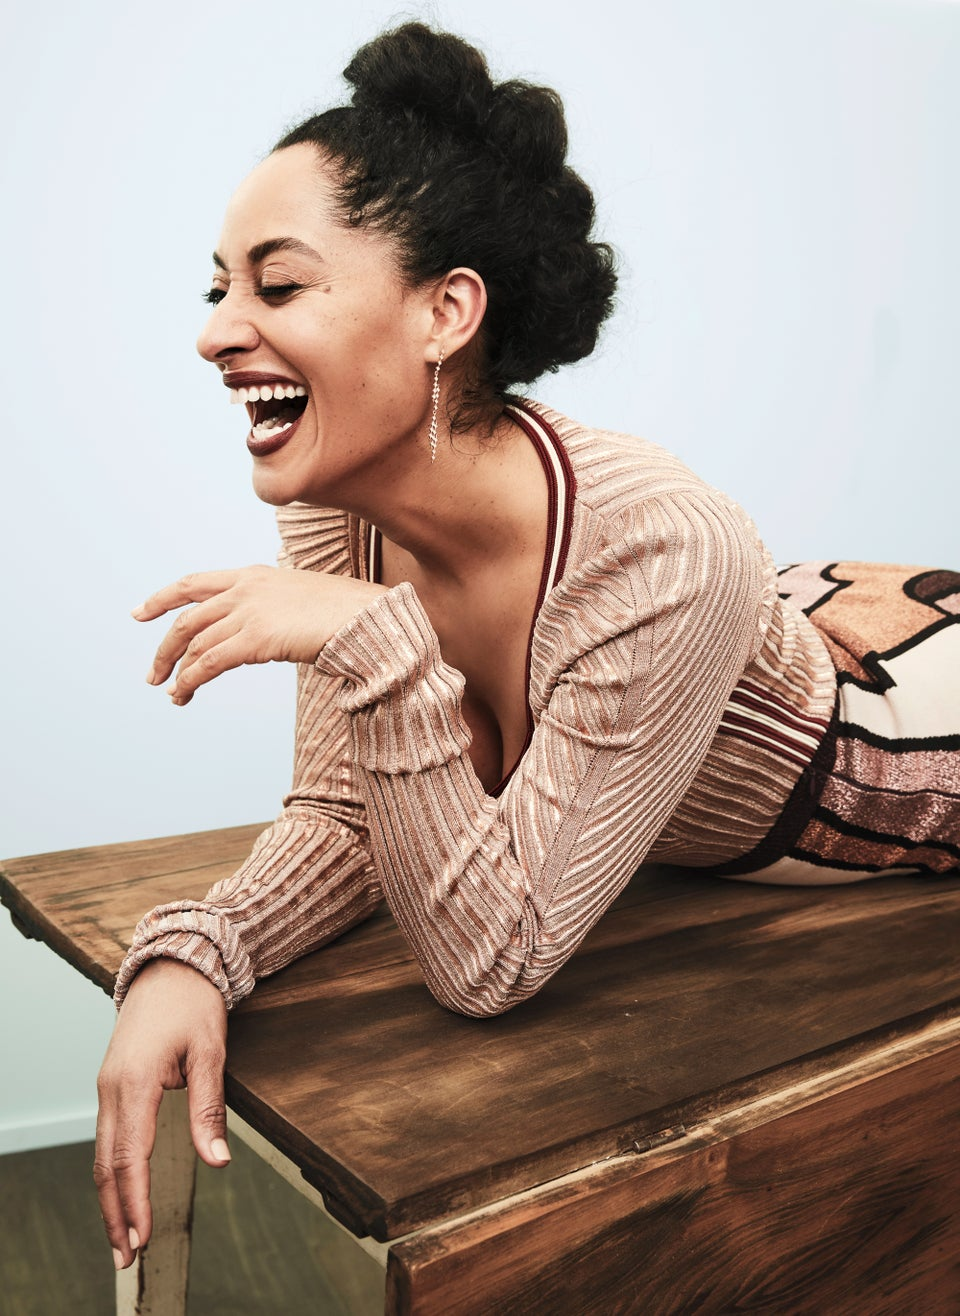 Tracee Ellis Ross Wears Lipstick To The Gym—Here's Why